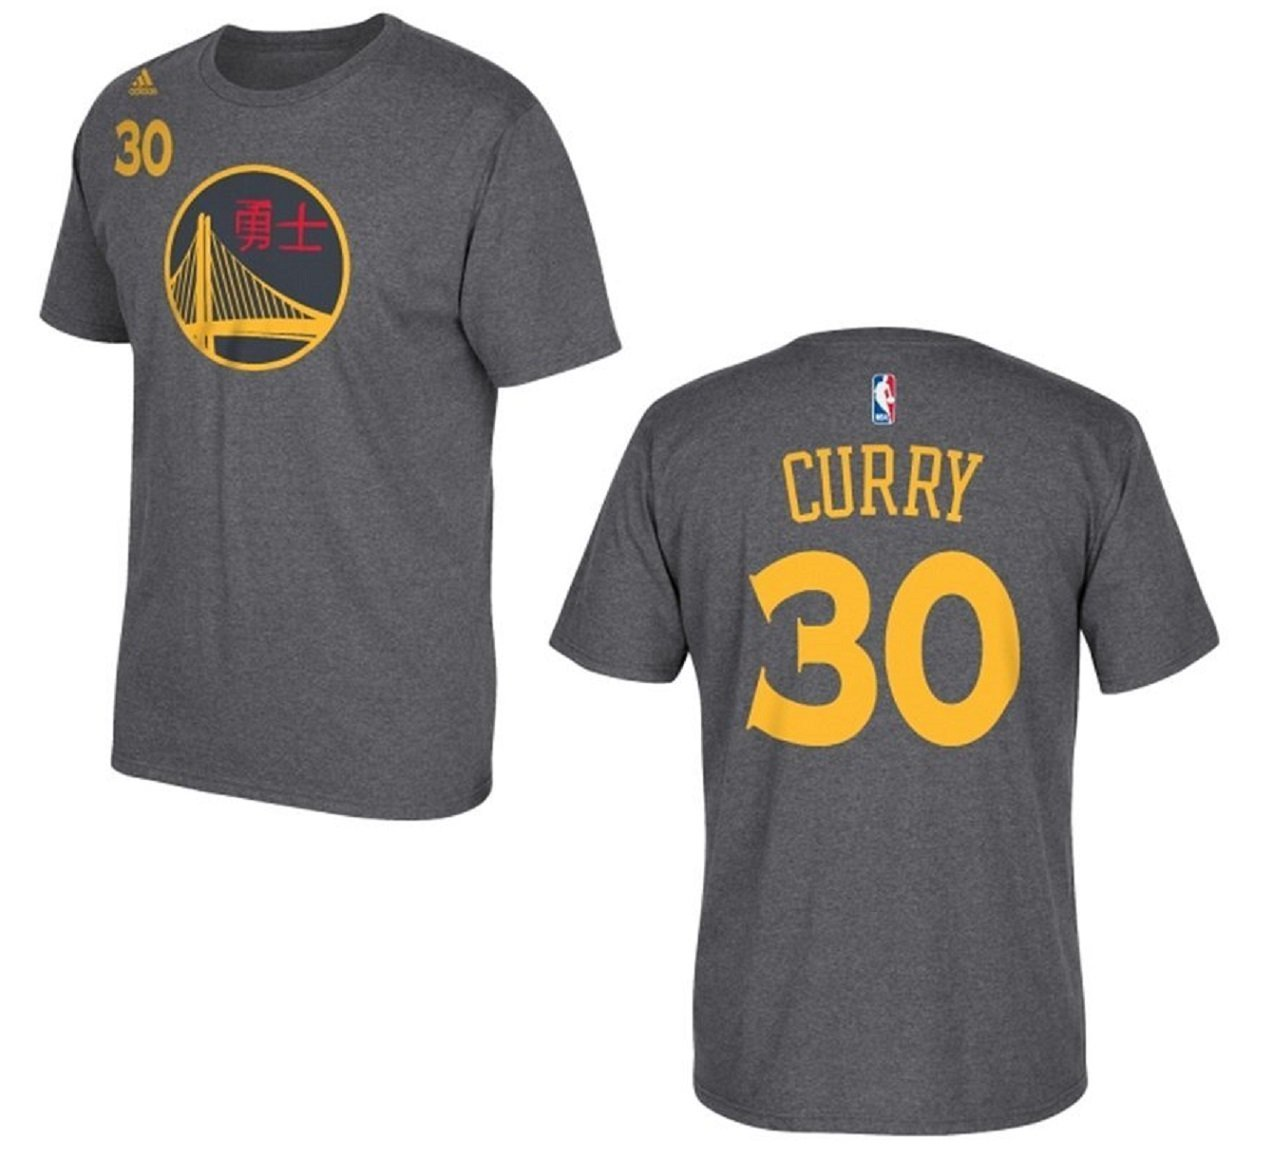 the best attitude a0c3c 39198 adidas Stephen Curry Youth Name & Number T-Shirt - Grey - Size: Small 8 -  Check Back Soon